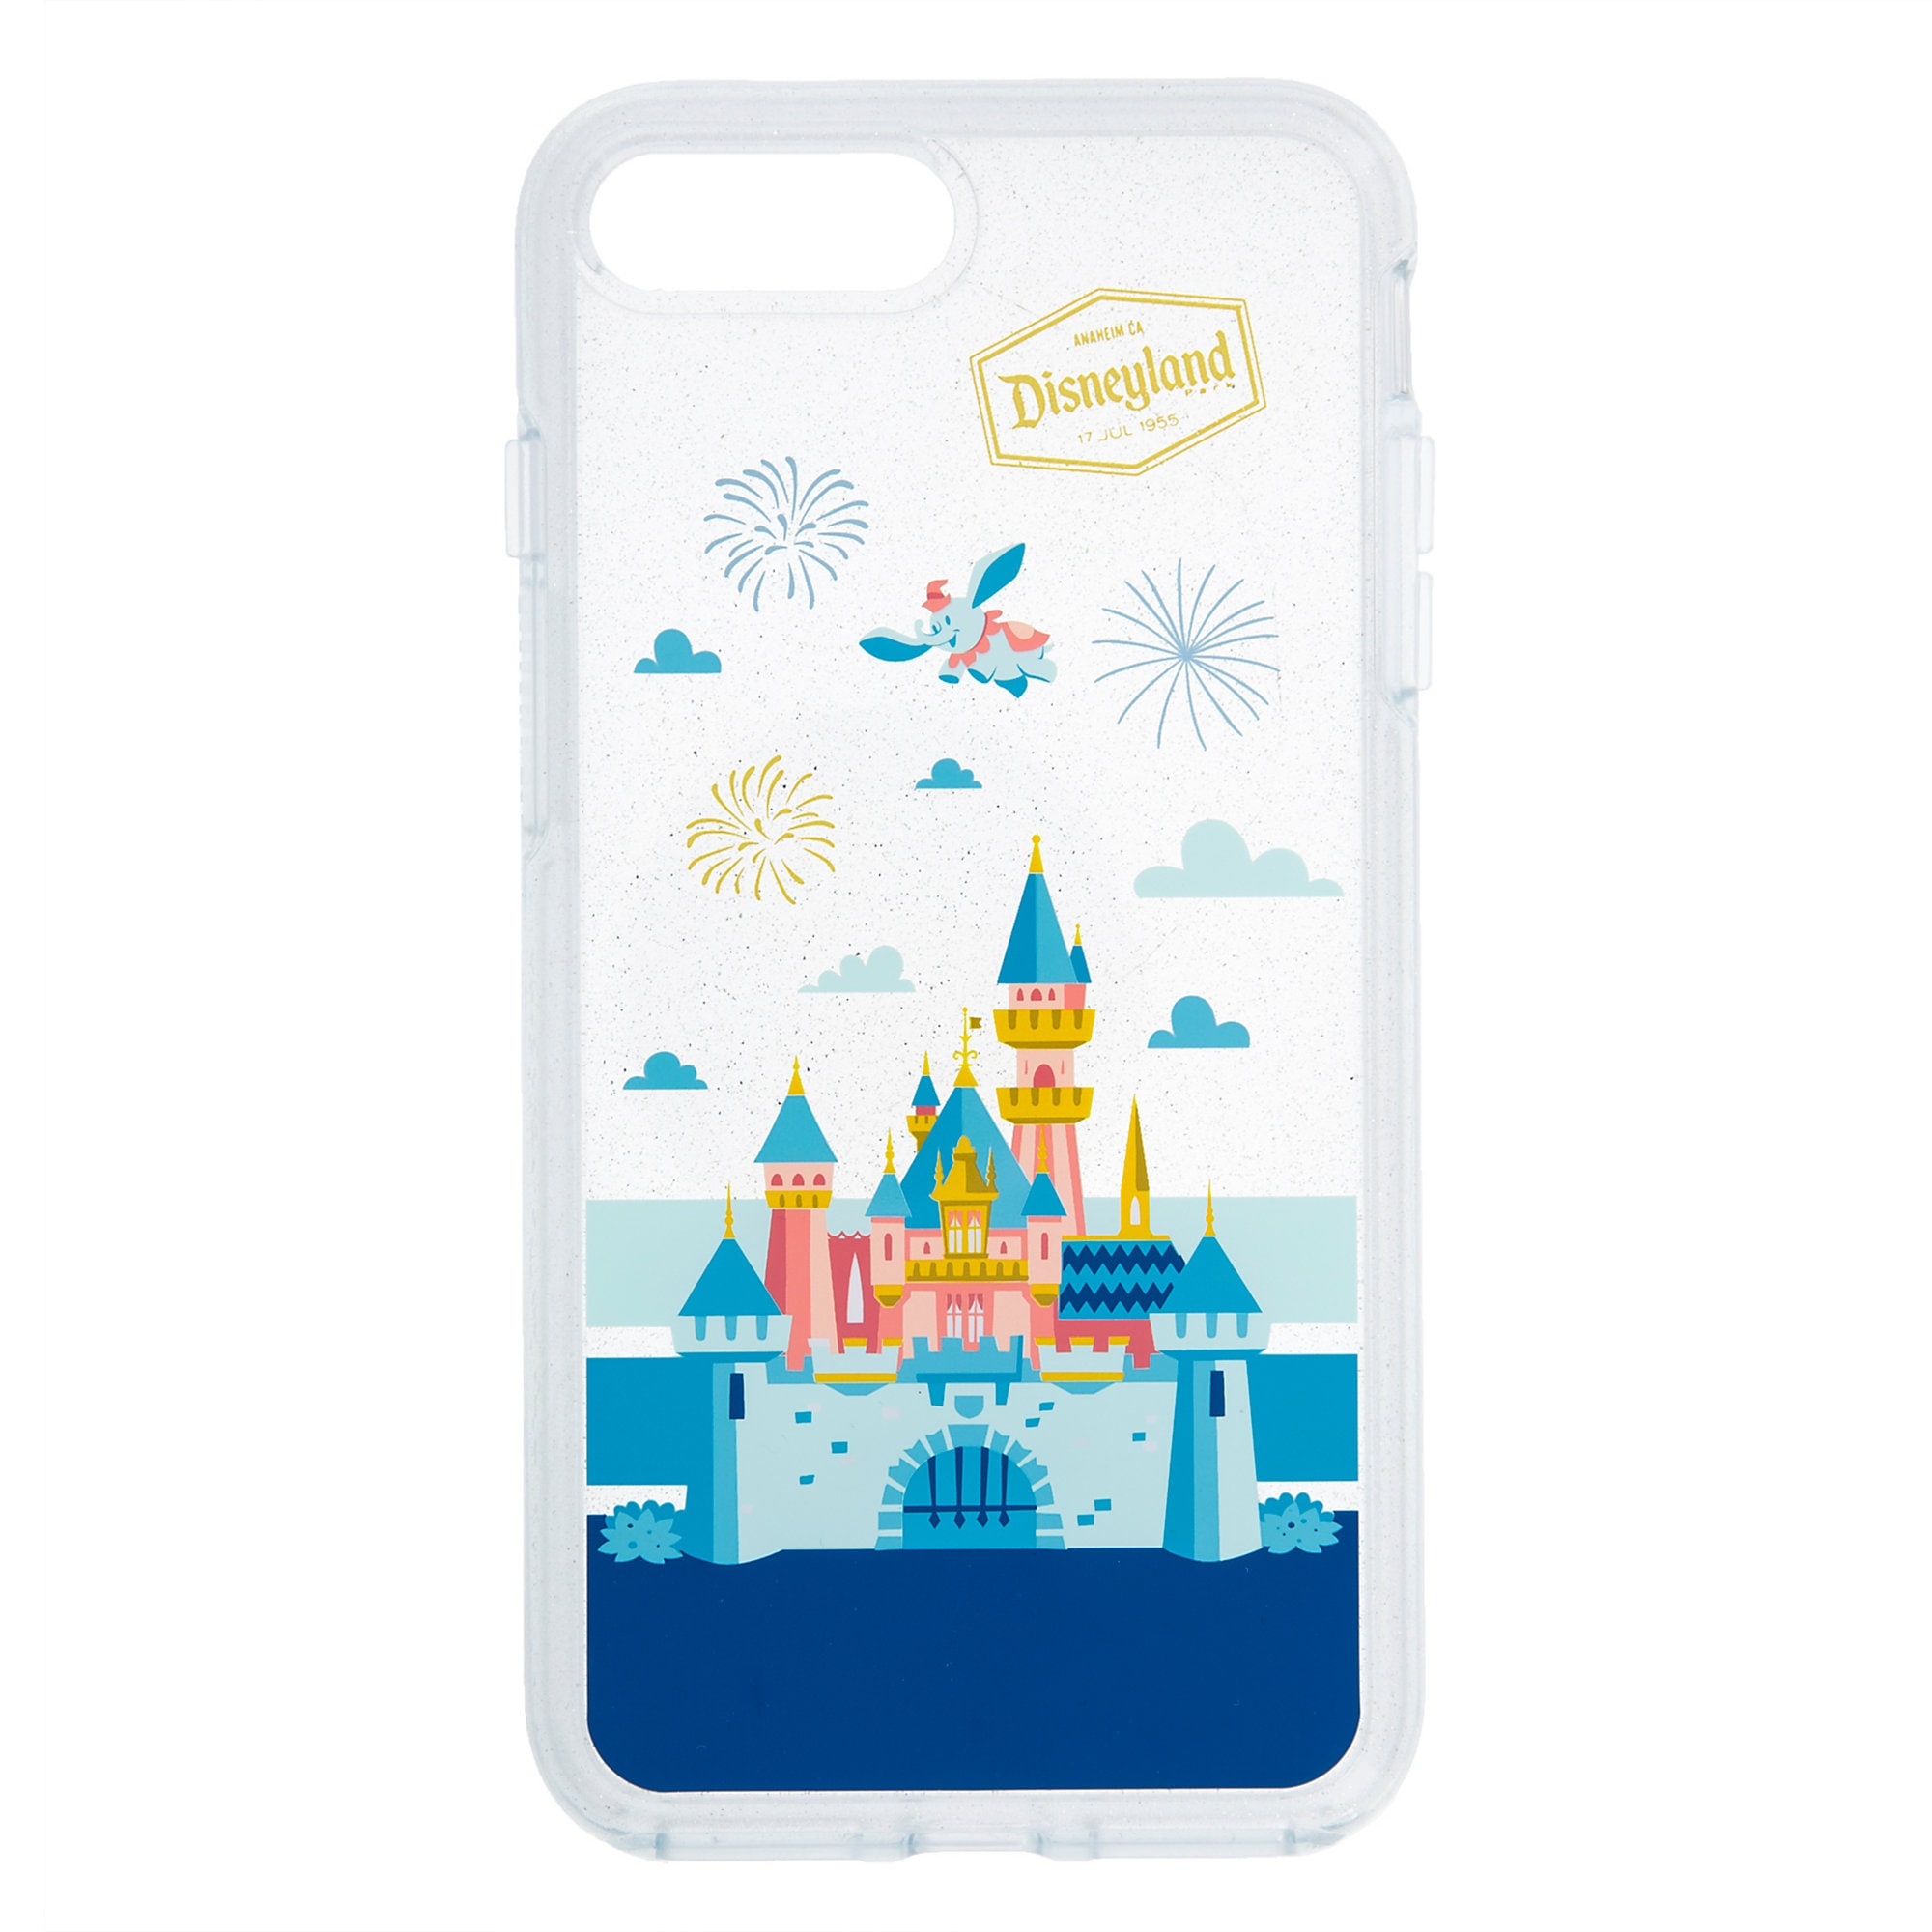 Disneyland OtterBox iPhone 7 Plus Case